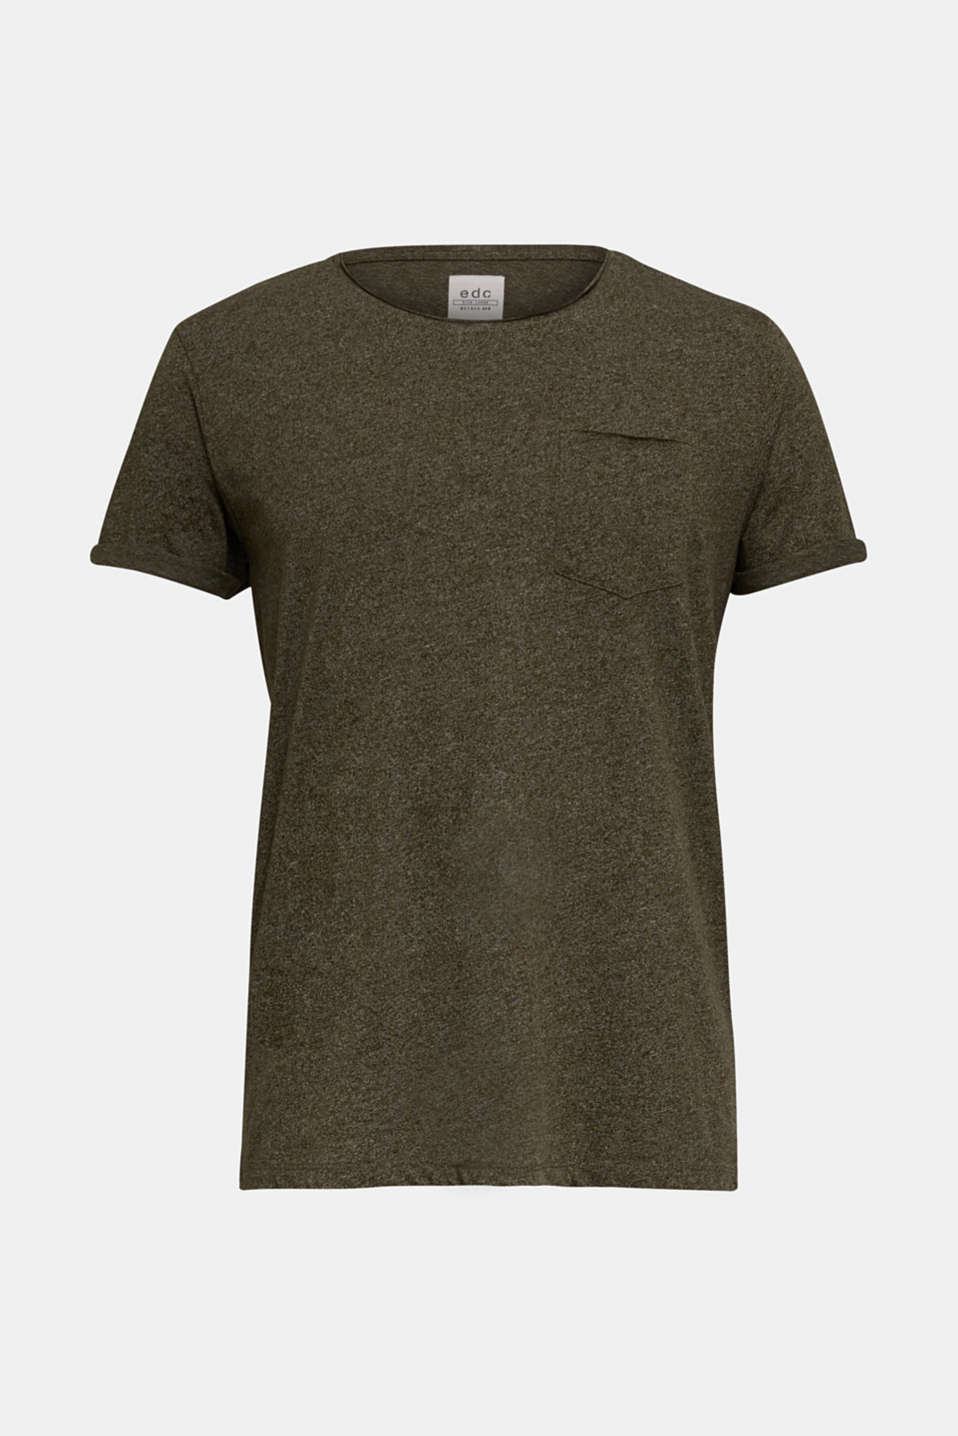 Jersey T-shirt in a casual look, OLIVE 5, detail image number 6